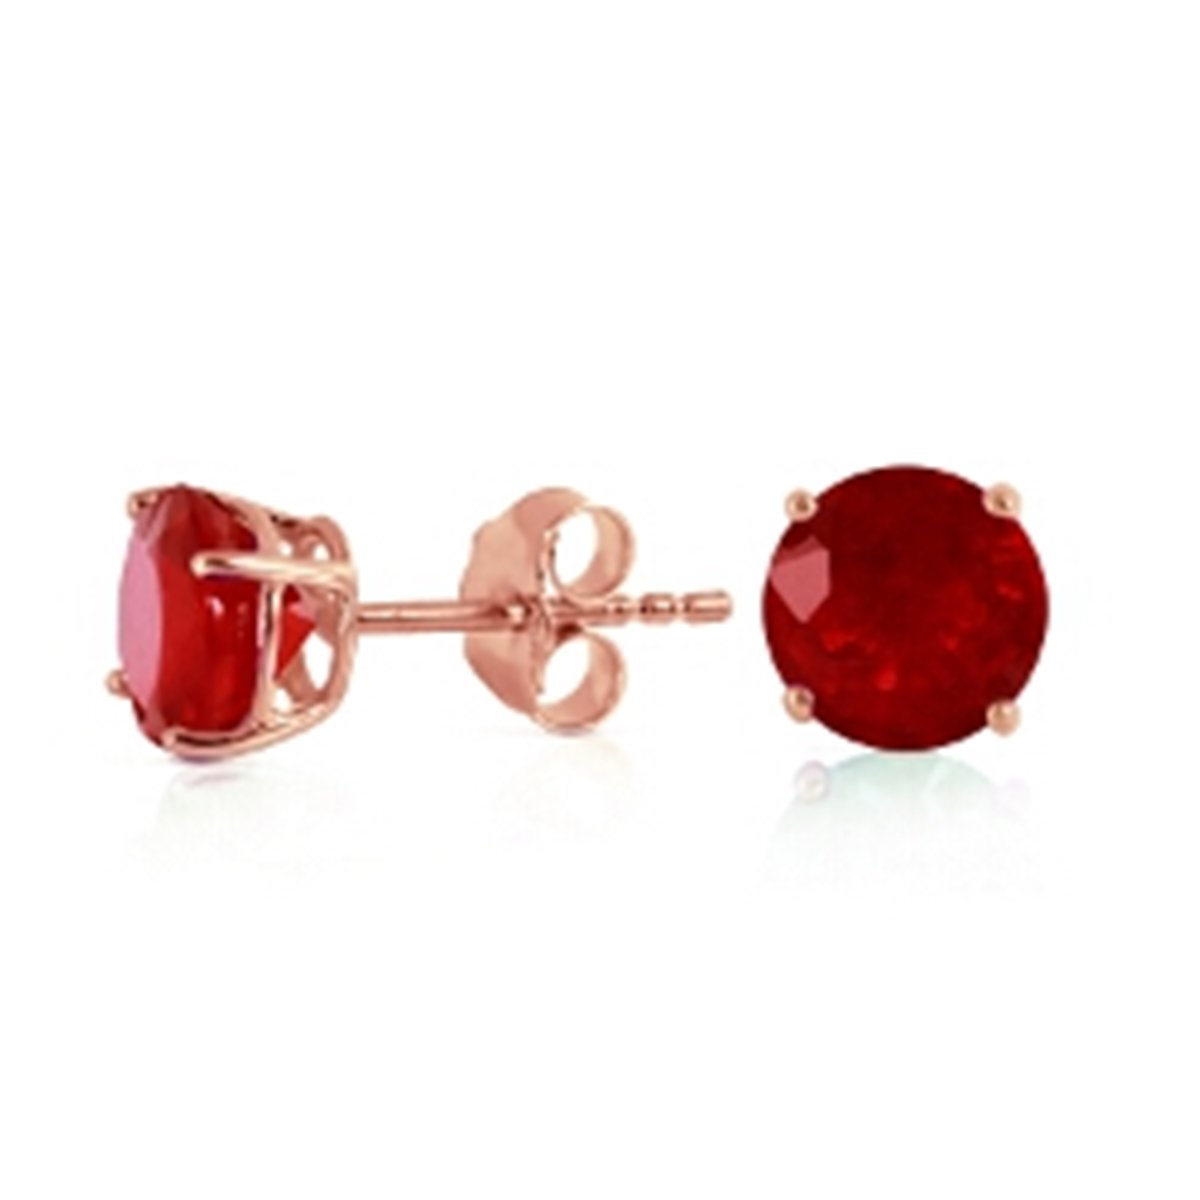 0.95 CTW 14K Solid Rose Gold Round Ruby Stud Earrings 1945-R